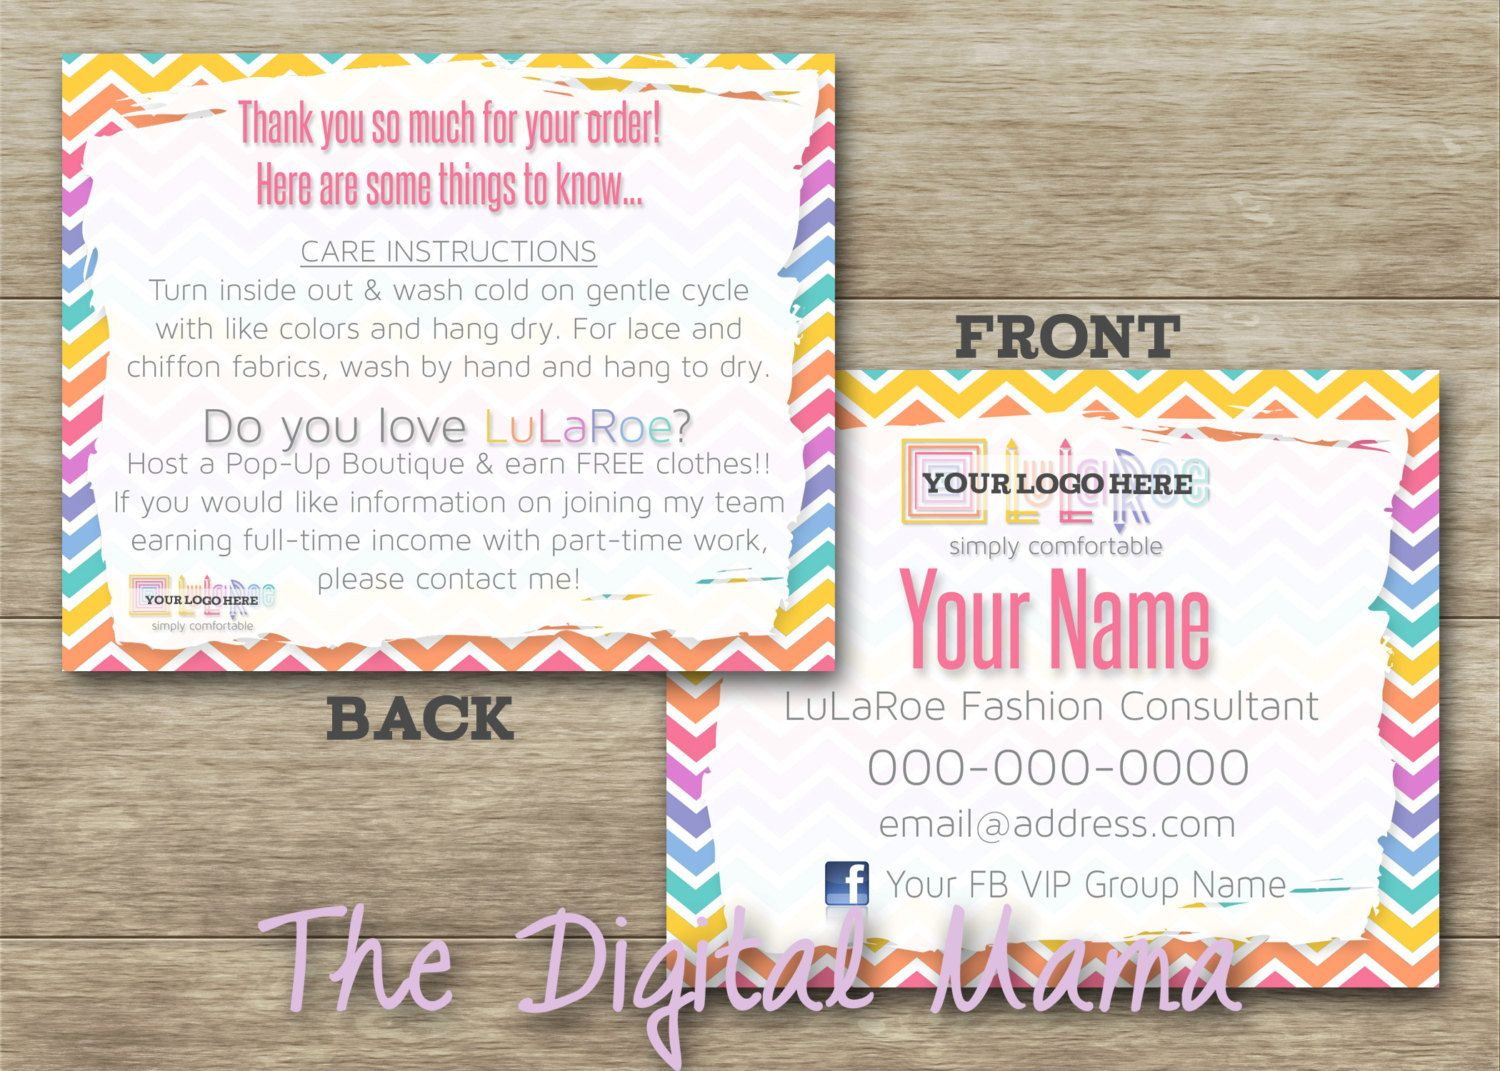 Direct sales customer thank you for order card lularoe digital direct sales customer thank you for order card lularoe digital download by thedigitalmama on kristyandbryce Images